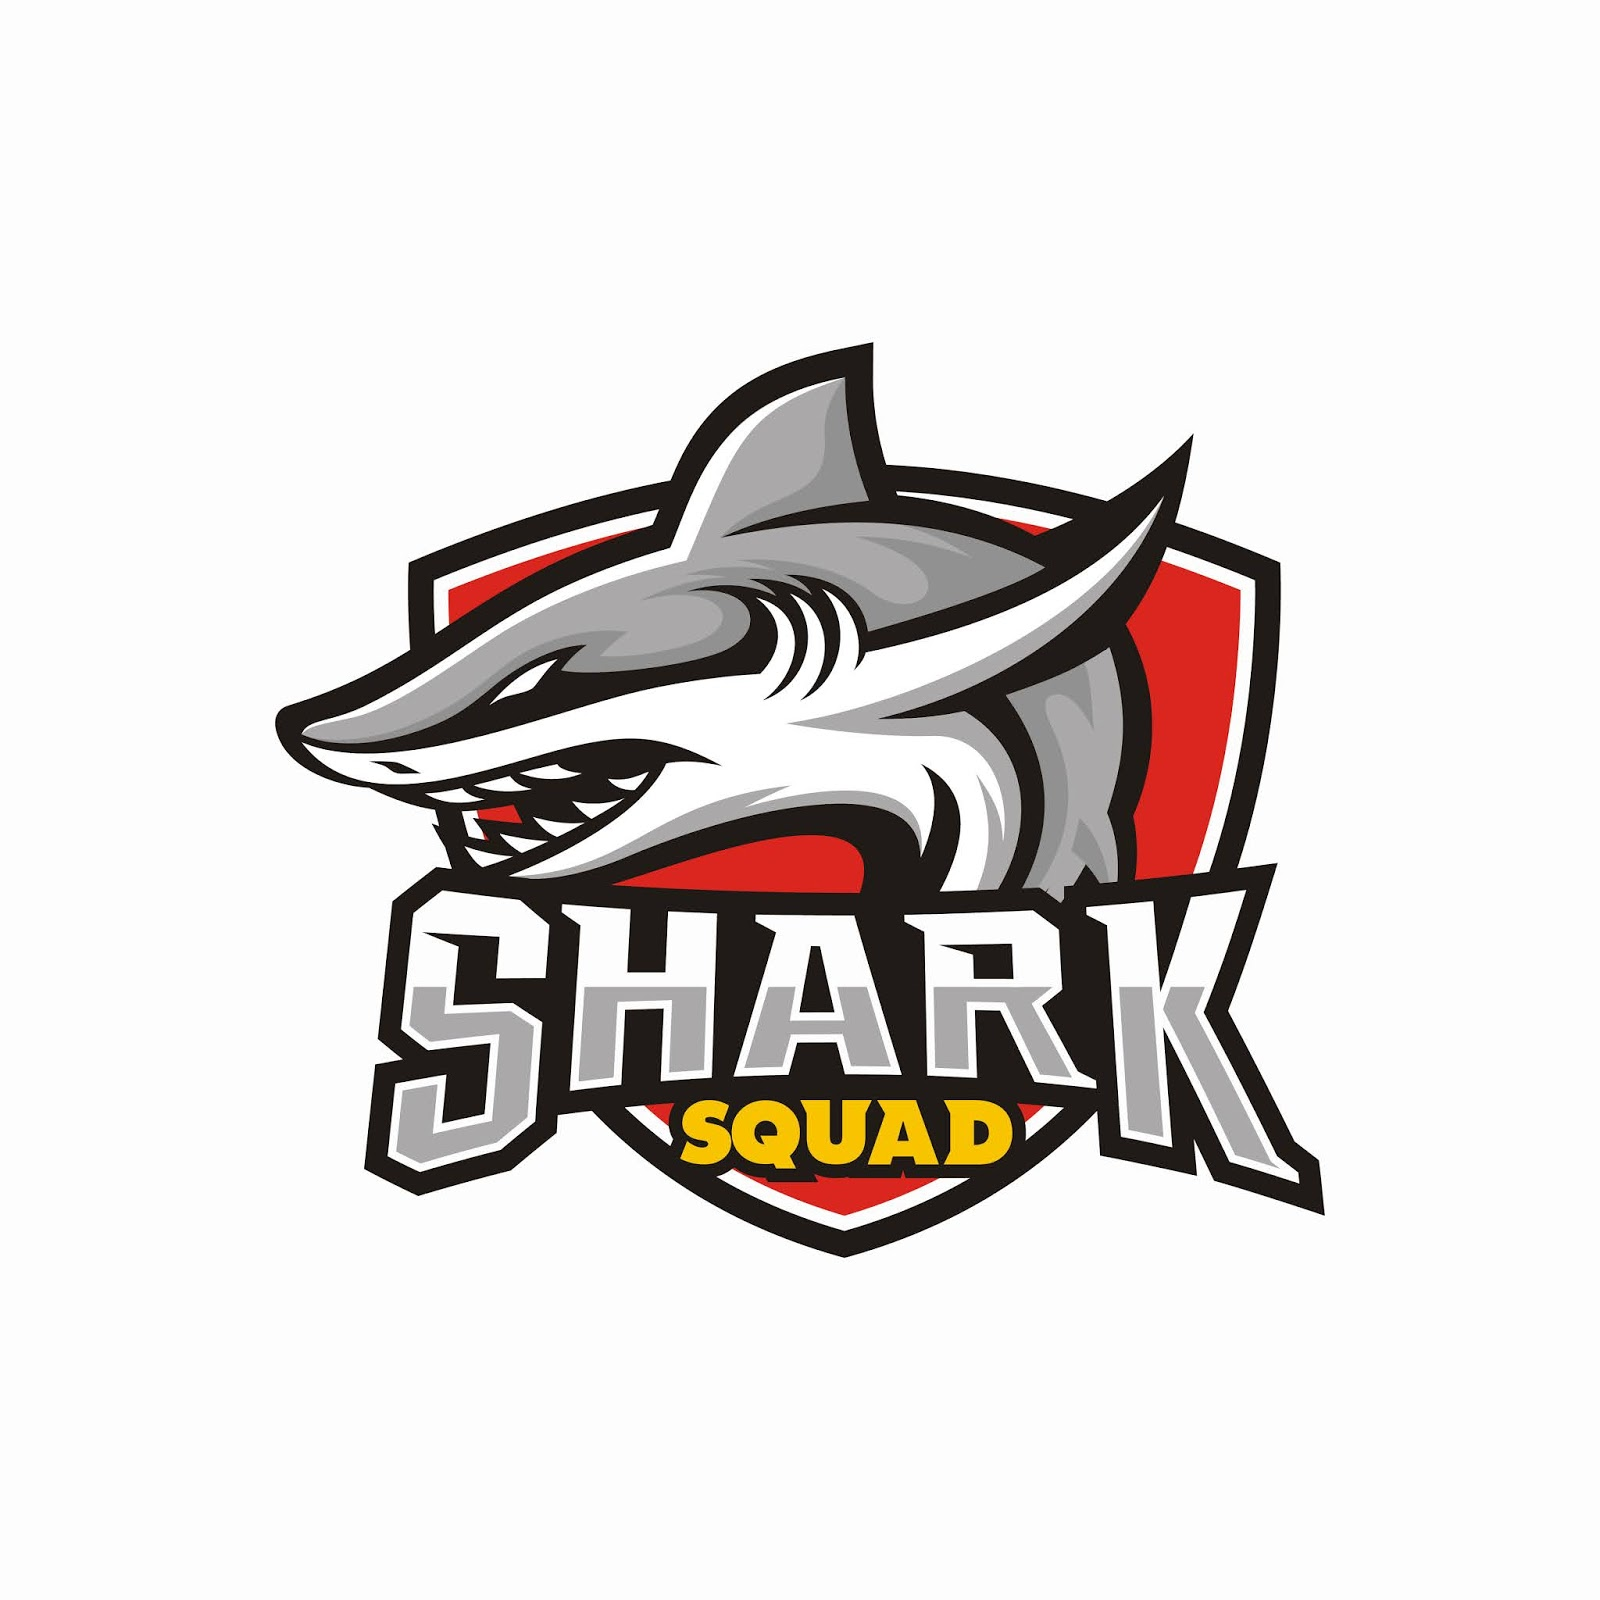 Shark Esport Gaming Mascot Free Download Vector CDR, AI, EPS and PNG Formats